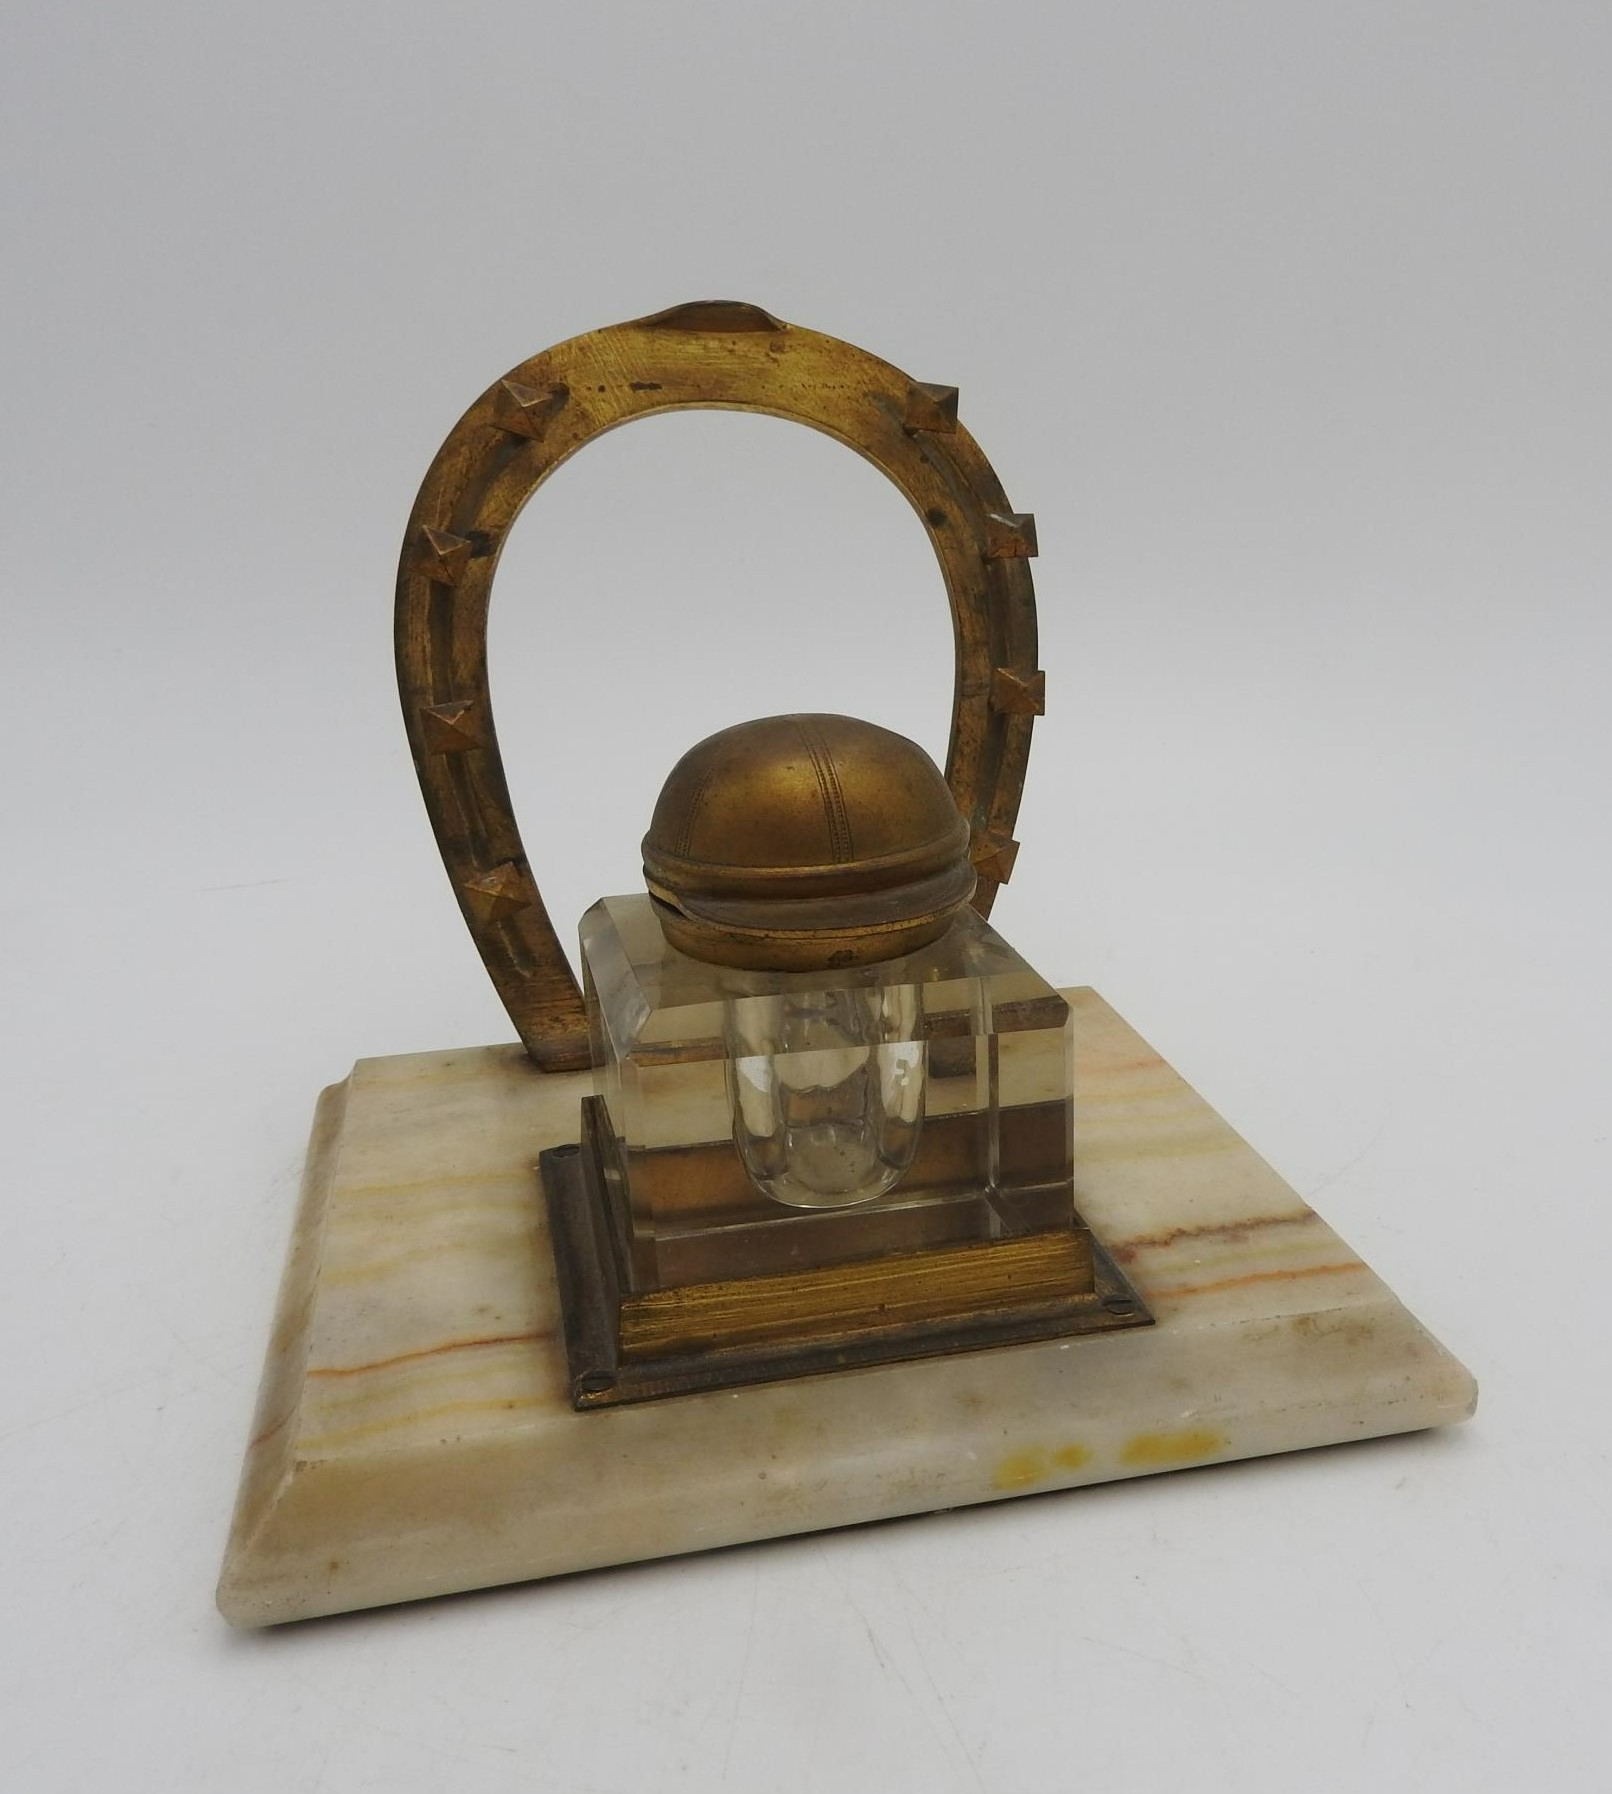 A NOVELTY JOCKEY'S INKWELL STAND, comprising of a horseshoe shaped pen rack and an inkwell with a